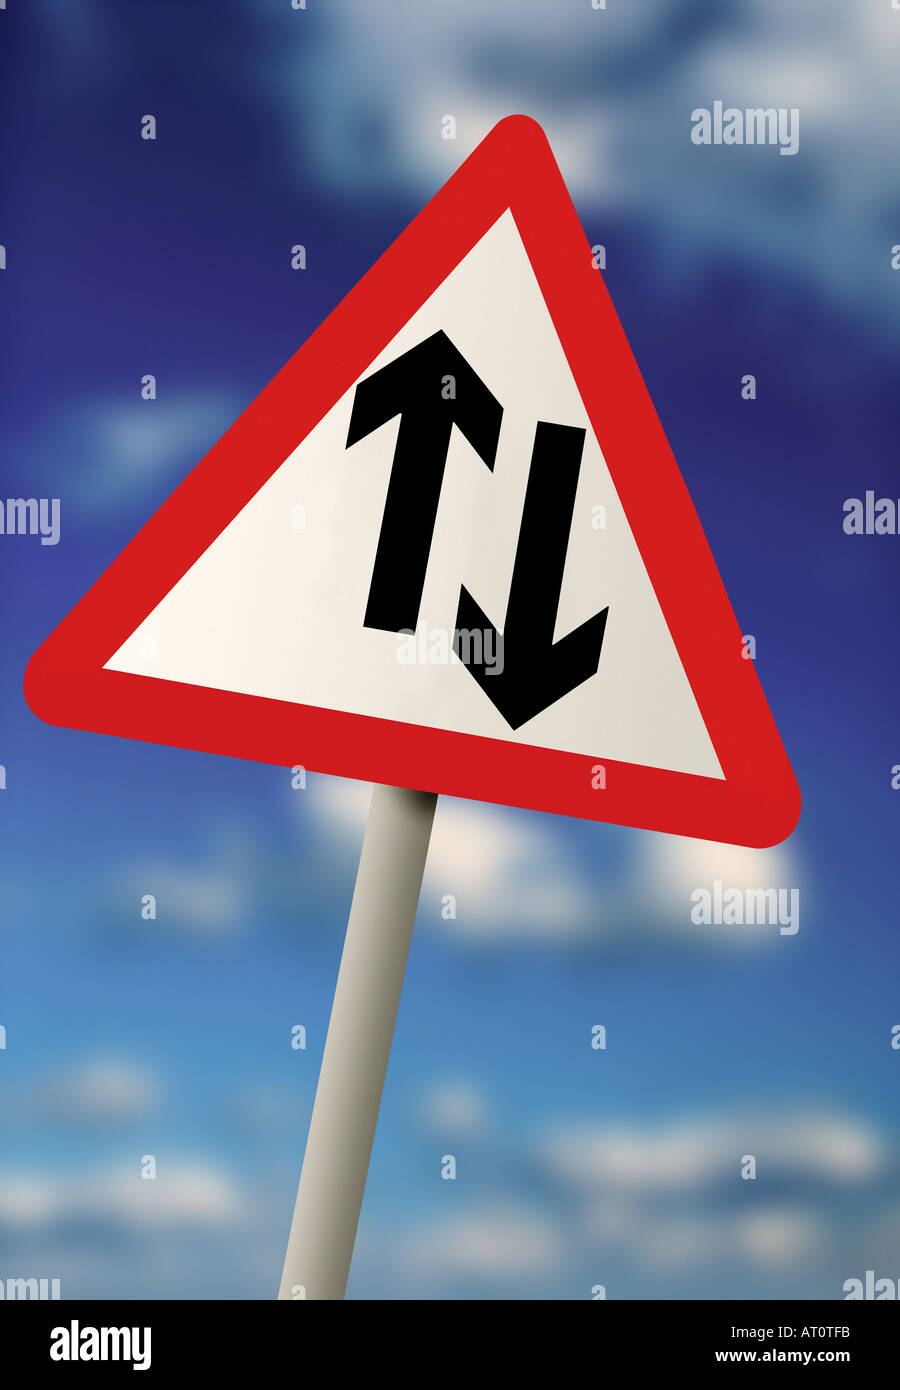 Equal right of way road sign - Stock Image